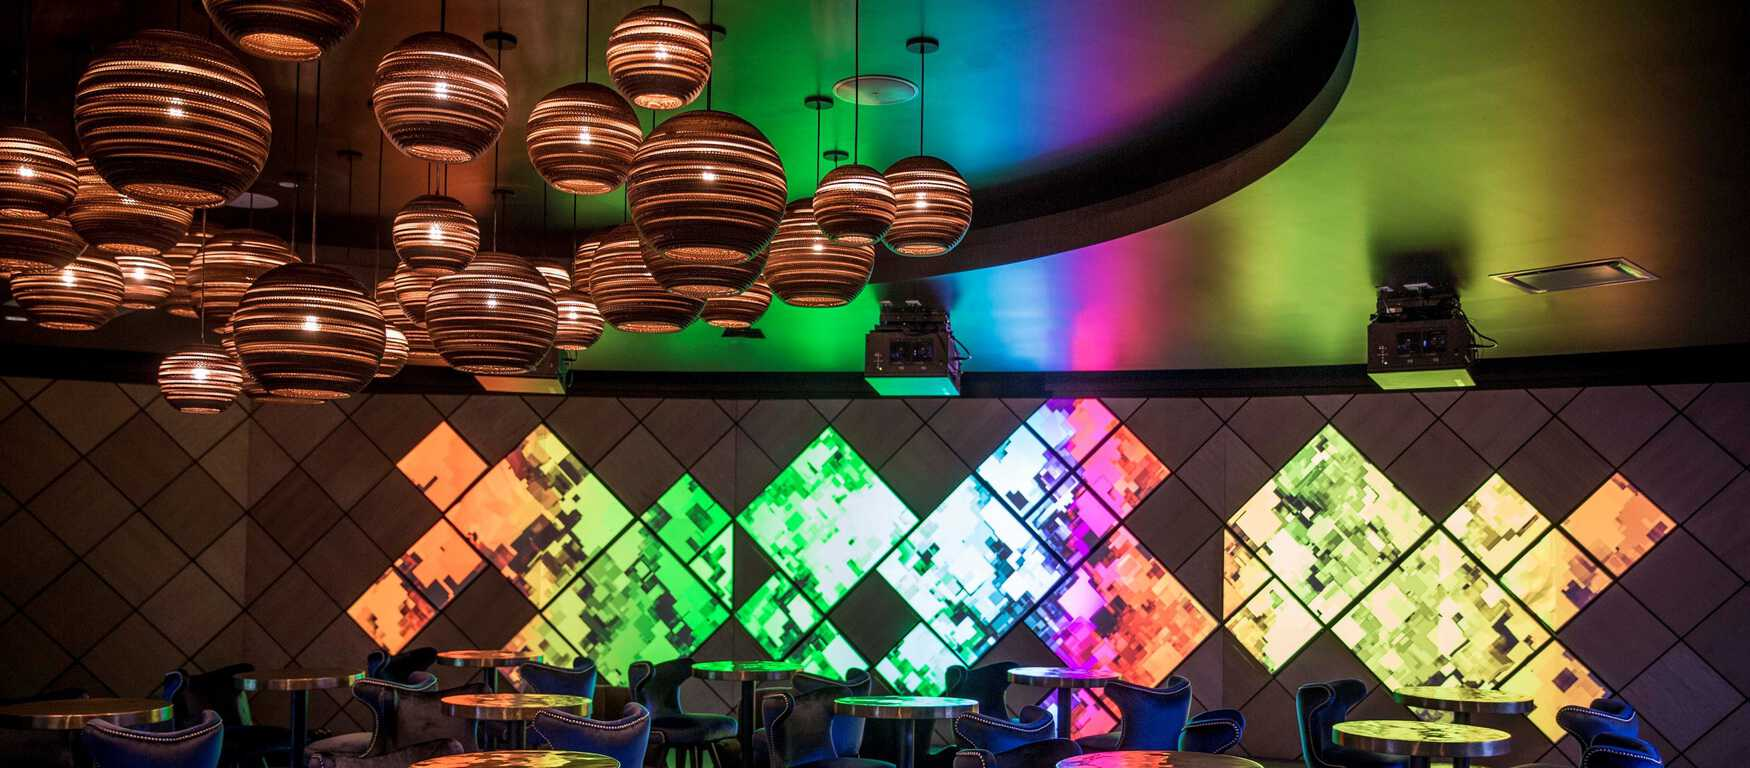 Check out the new microsoft lounge at l. A. Live - onmsft. Com - june 28, 2017